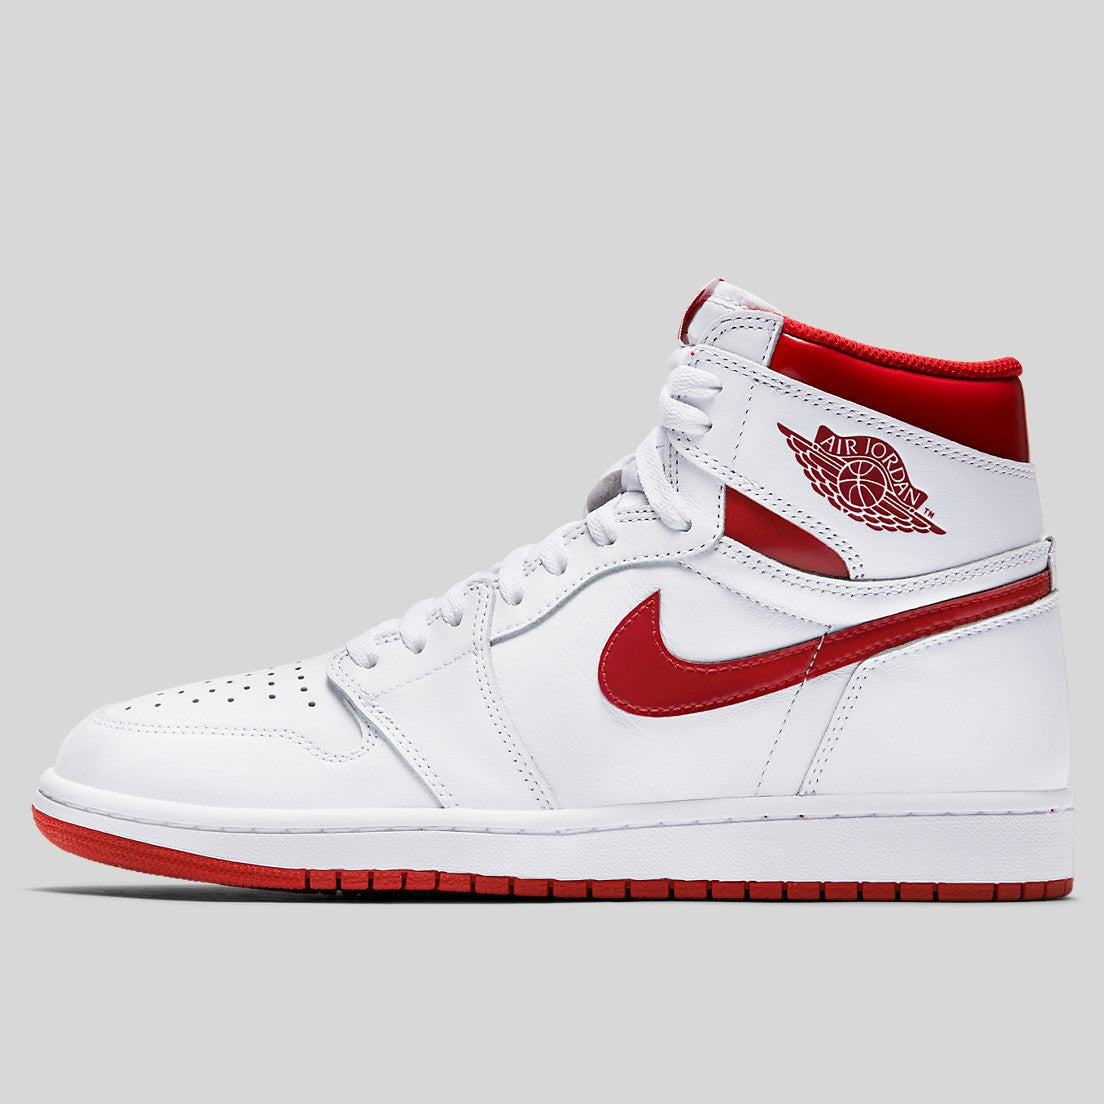 3e67d61515d Buy 2 OFF ANY air jordan 1 retro high red white CASE AND GET 70% OFF!